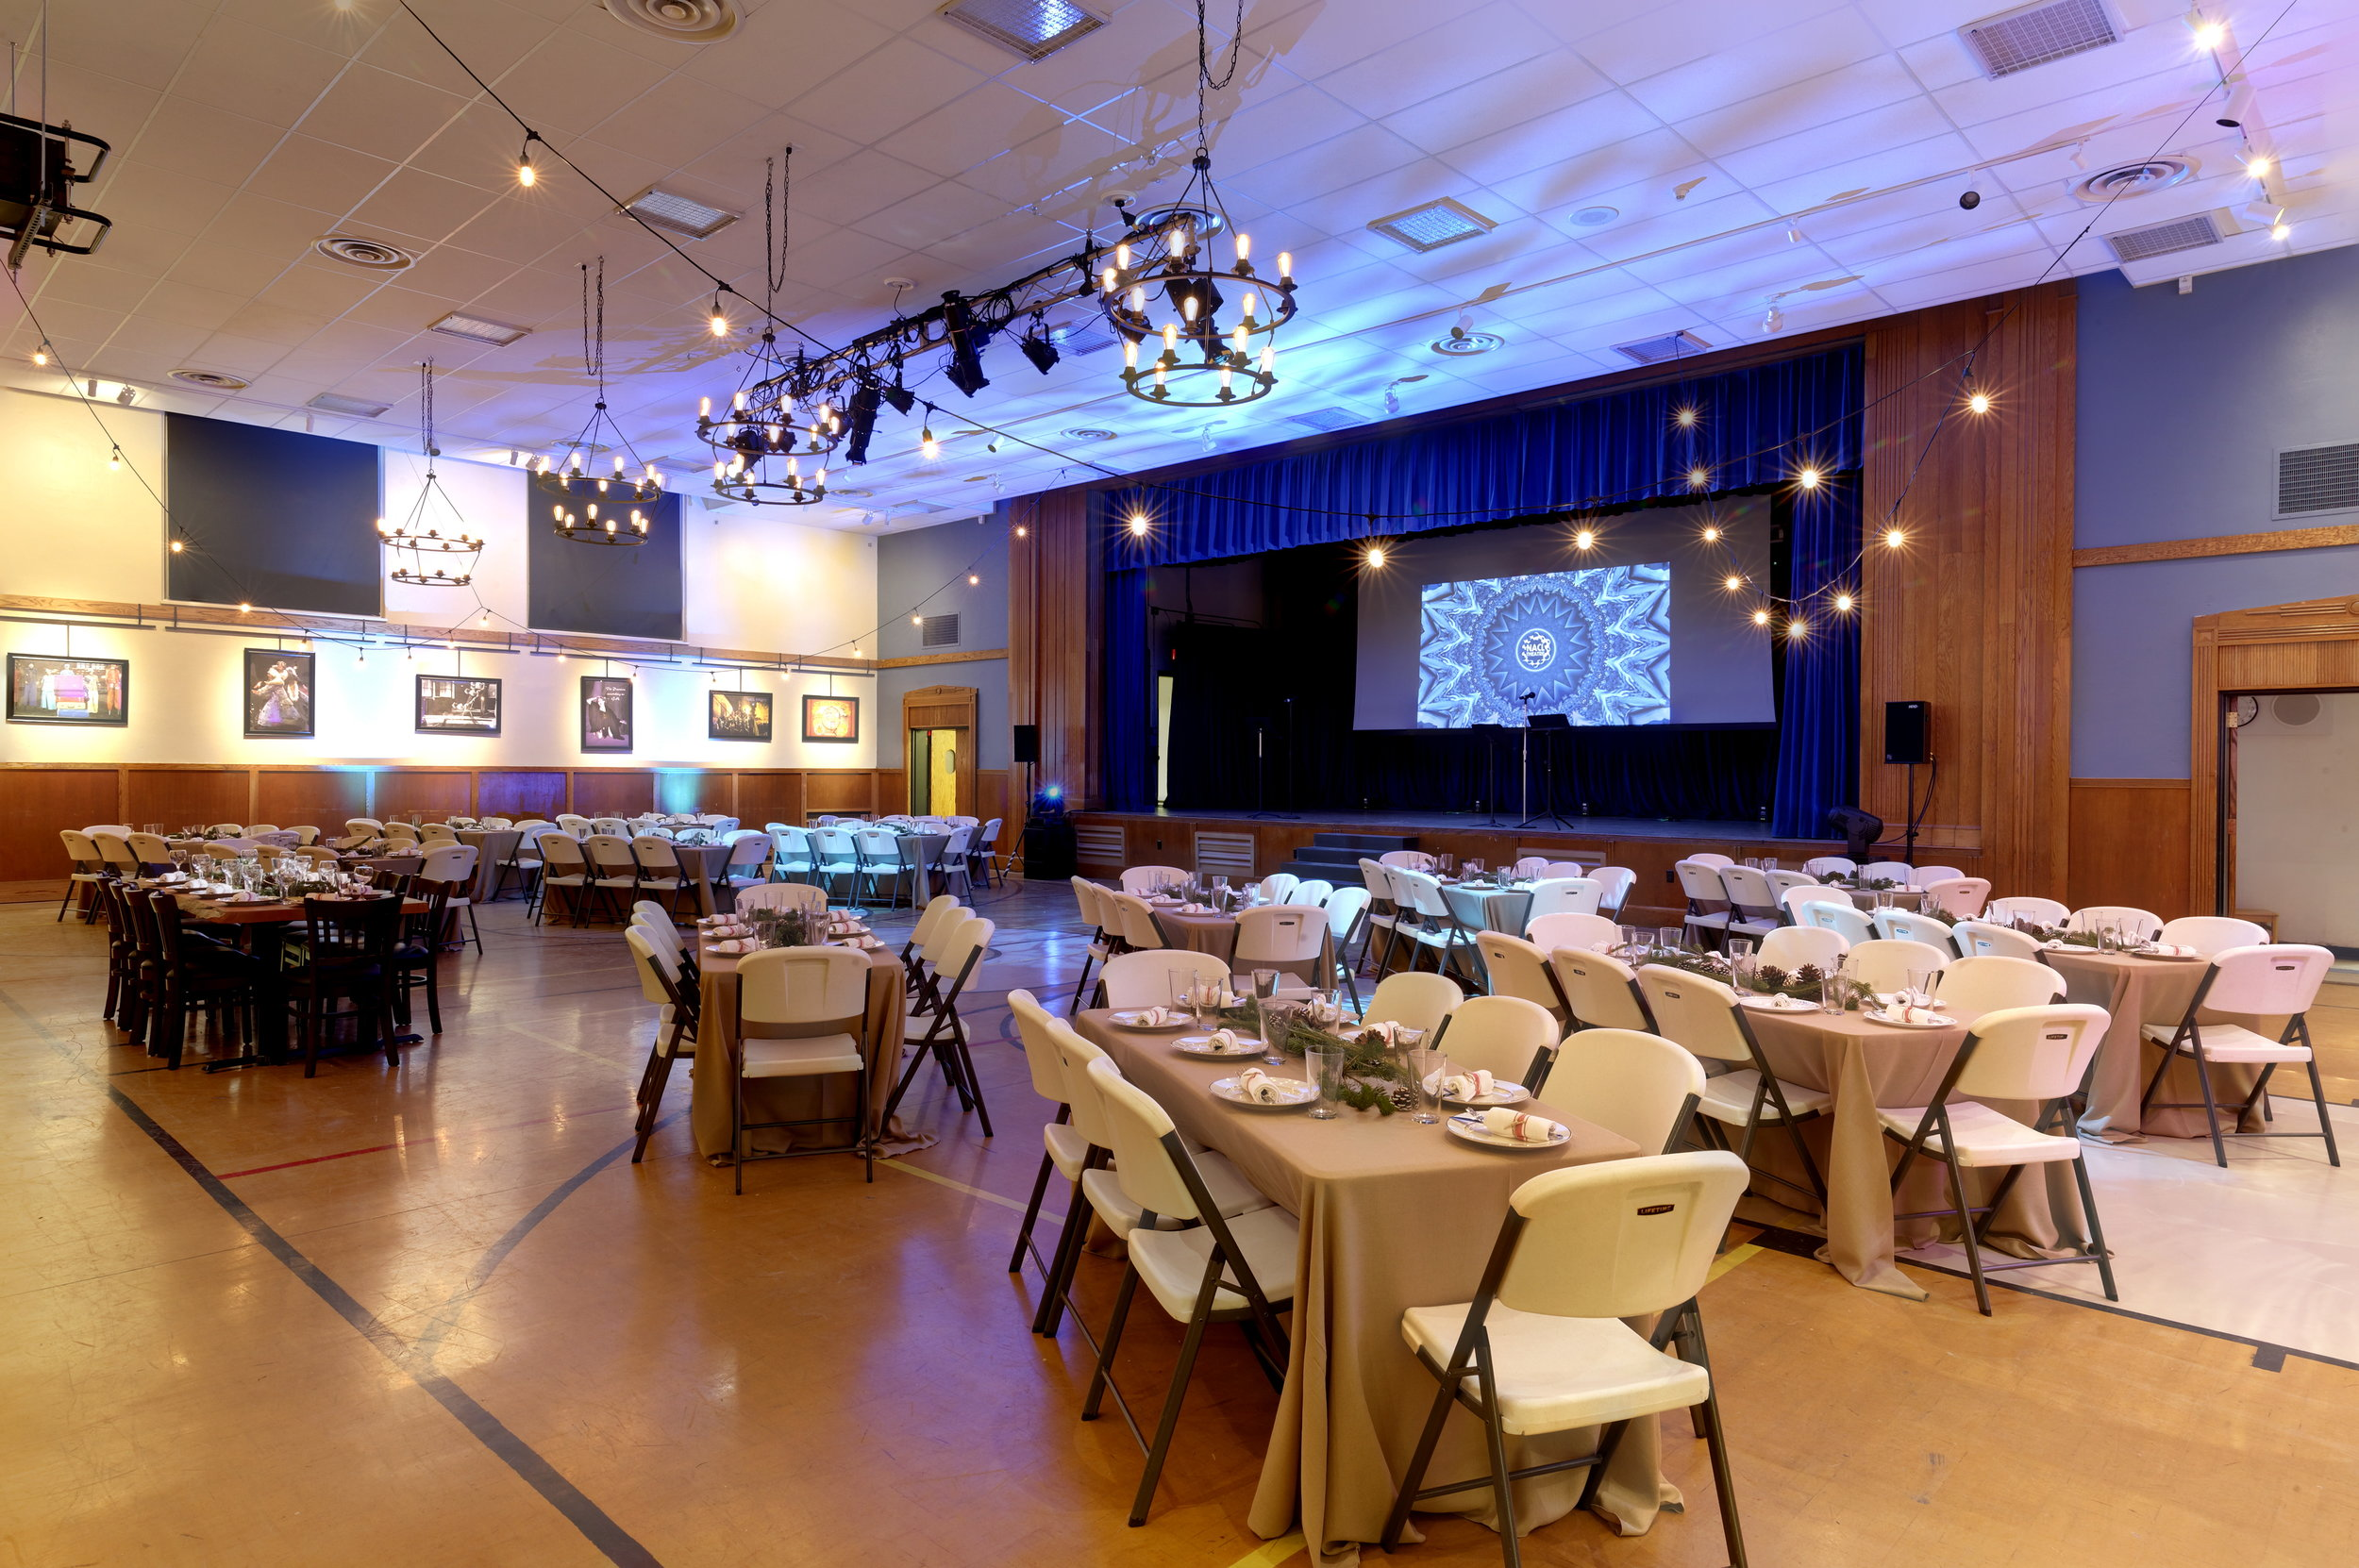 Delaware Hall Event Space with party setup.jpg